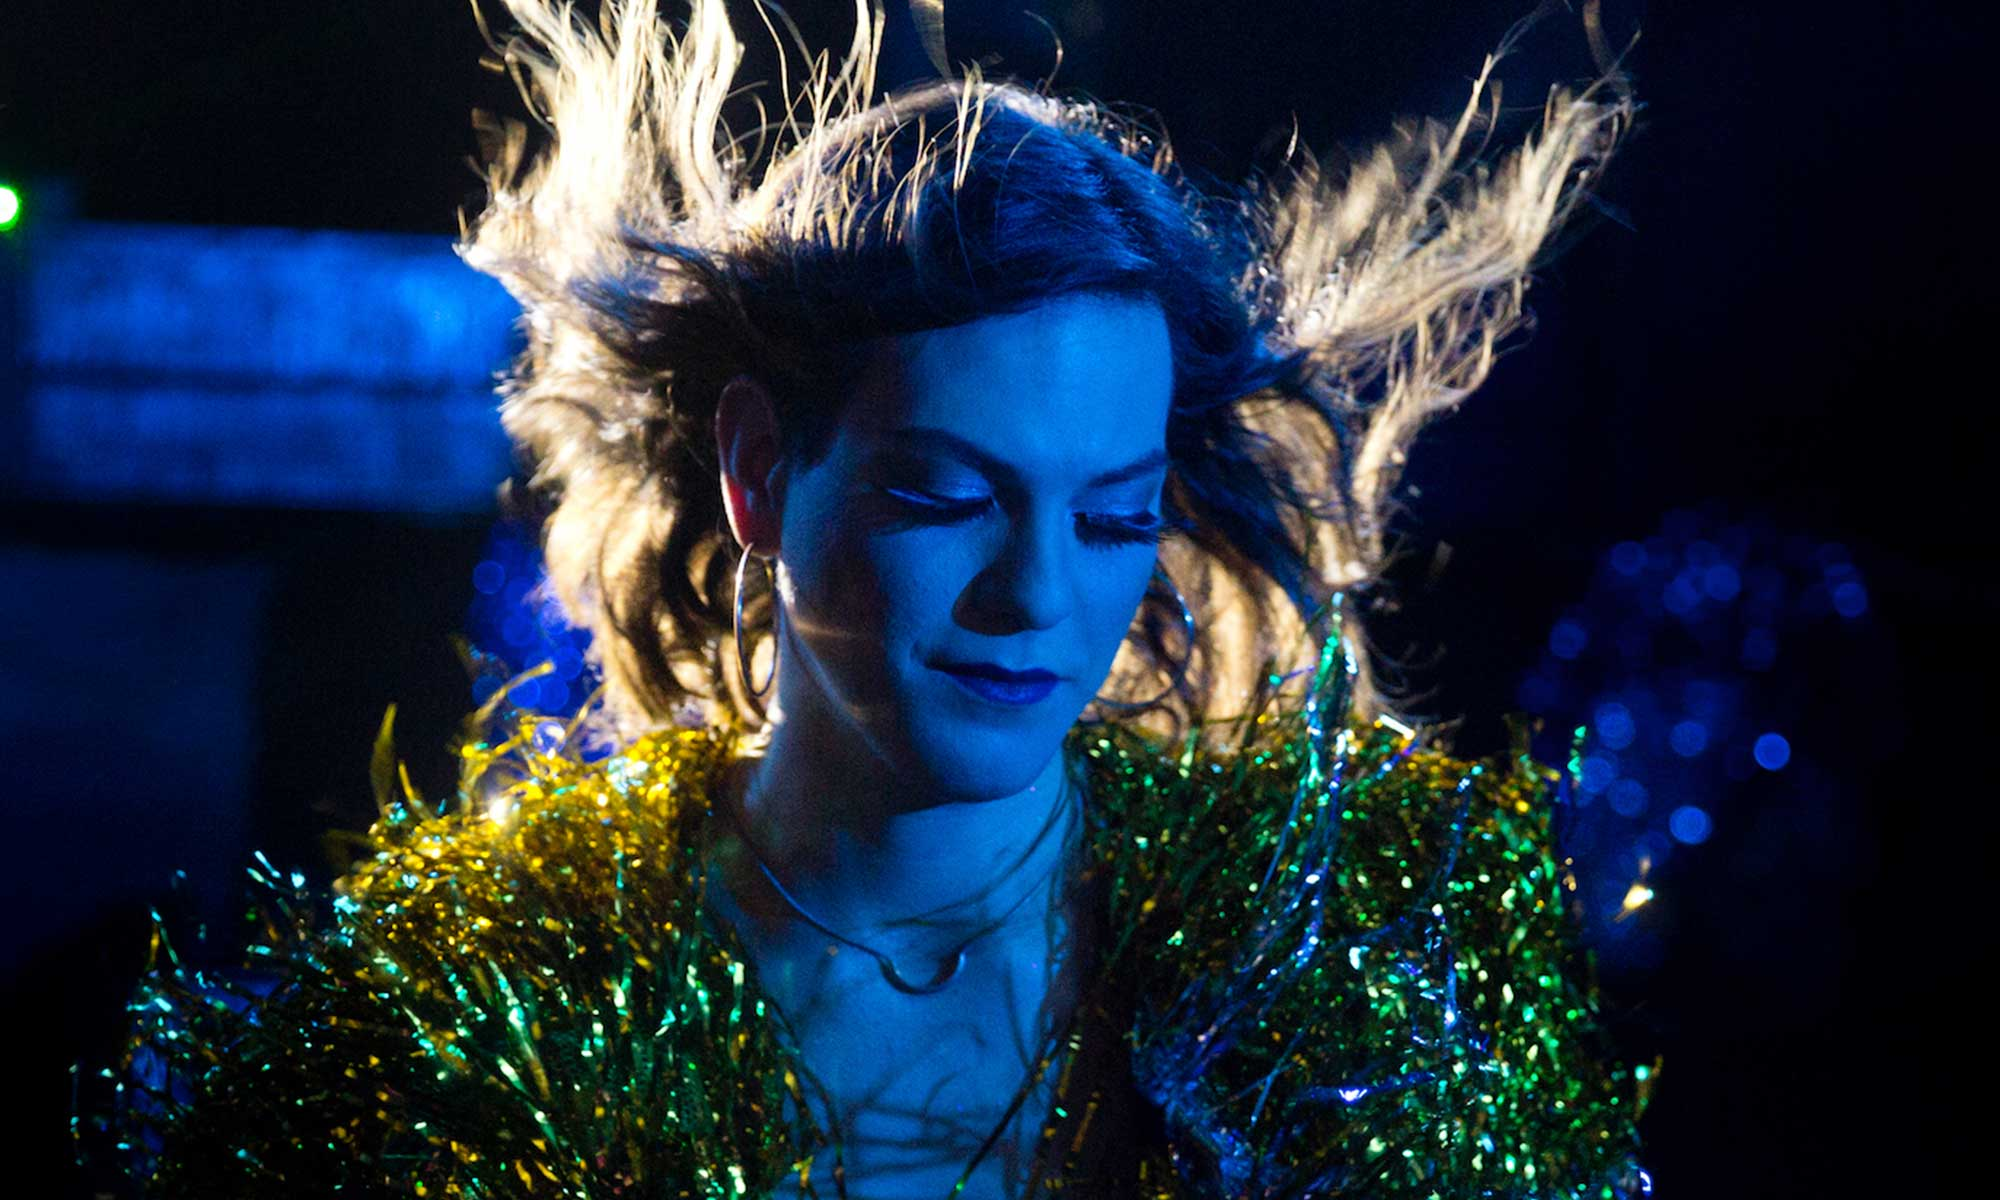 You Can Now Stream Chilean Oscar Winner 'A Fantastic Woman'